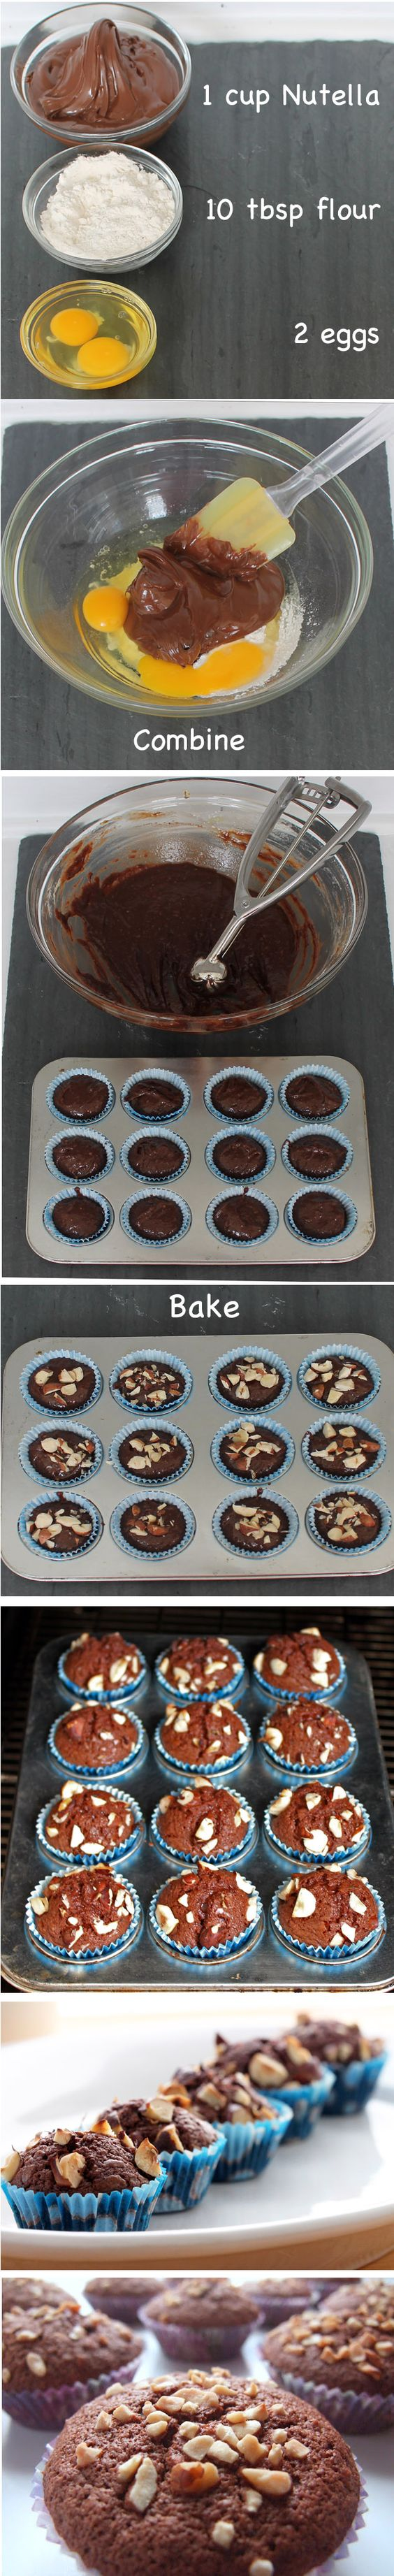 Brownies-muffins de Nutella en 15 minutos: